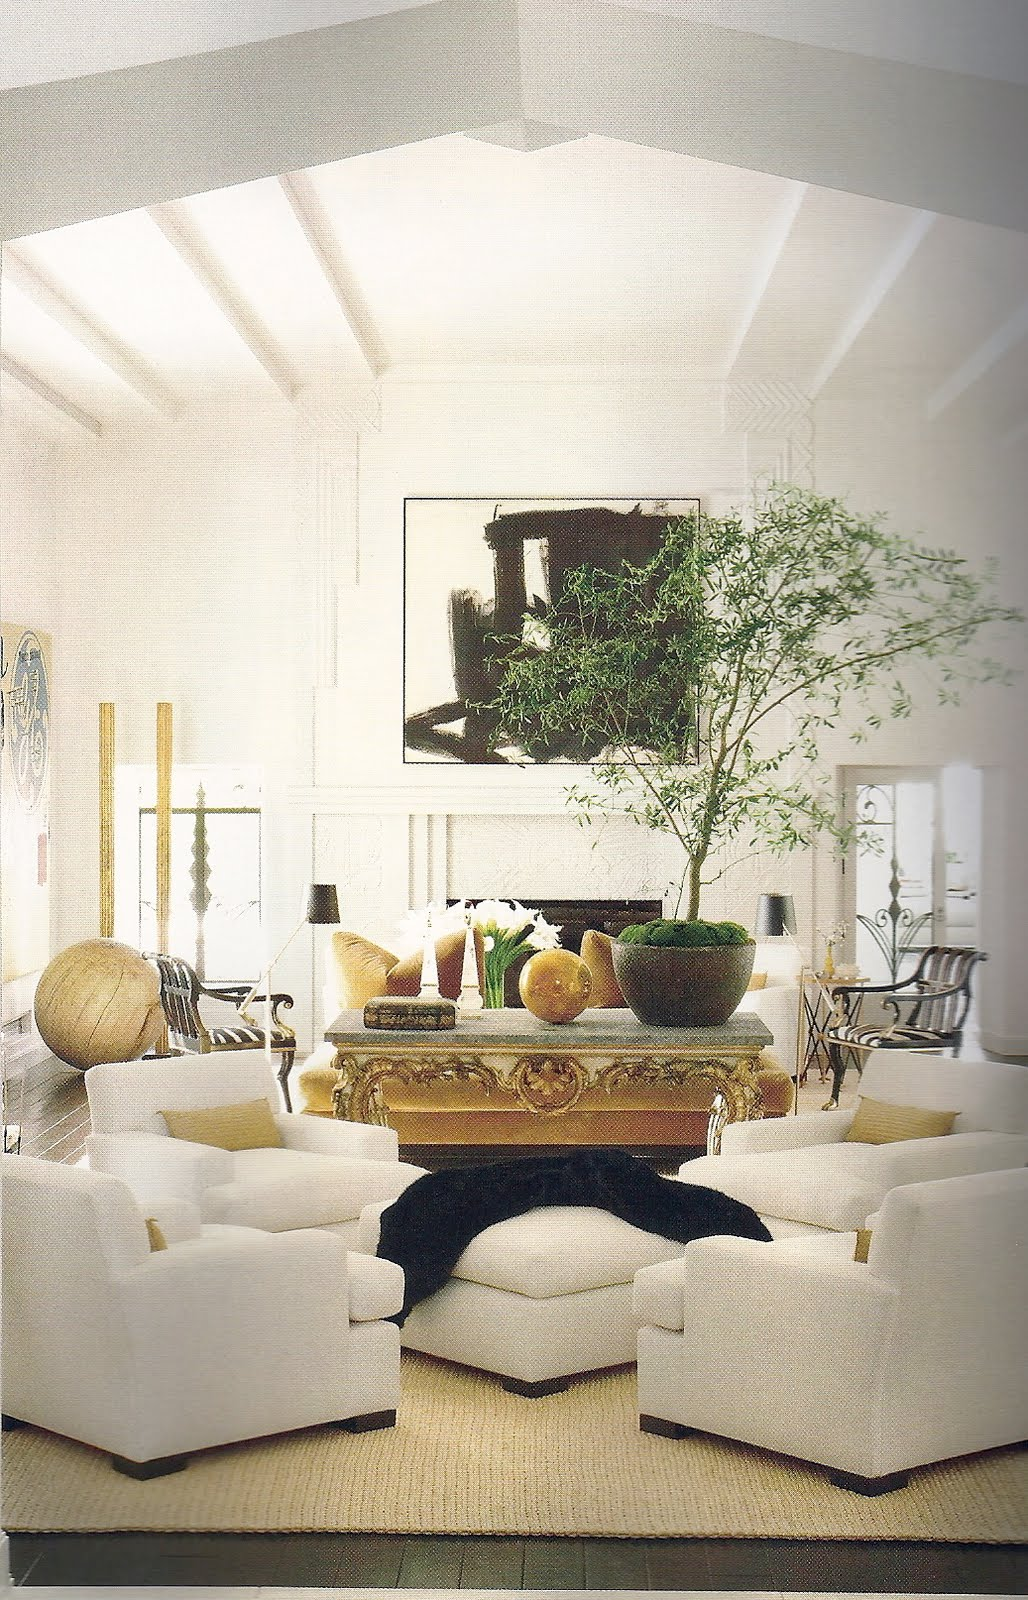 Richard hallberg in los angeles for Living room 2 seating areas